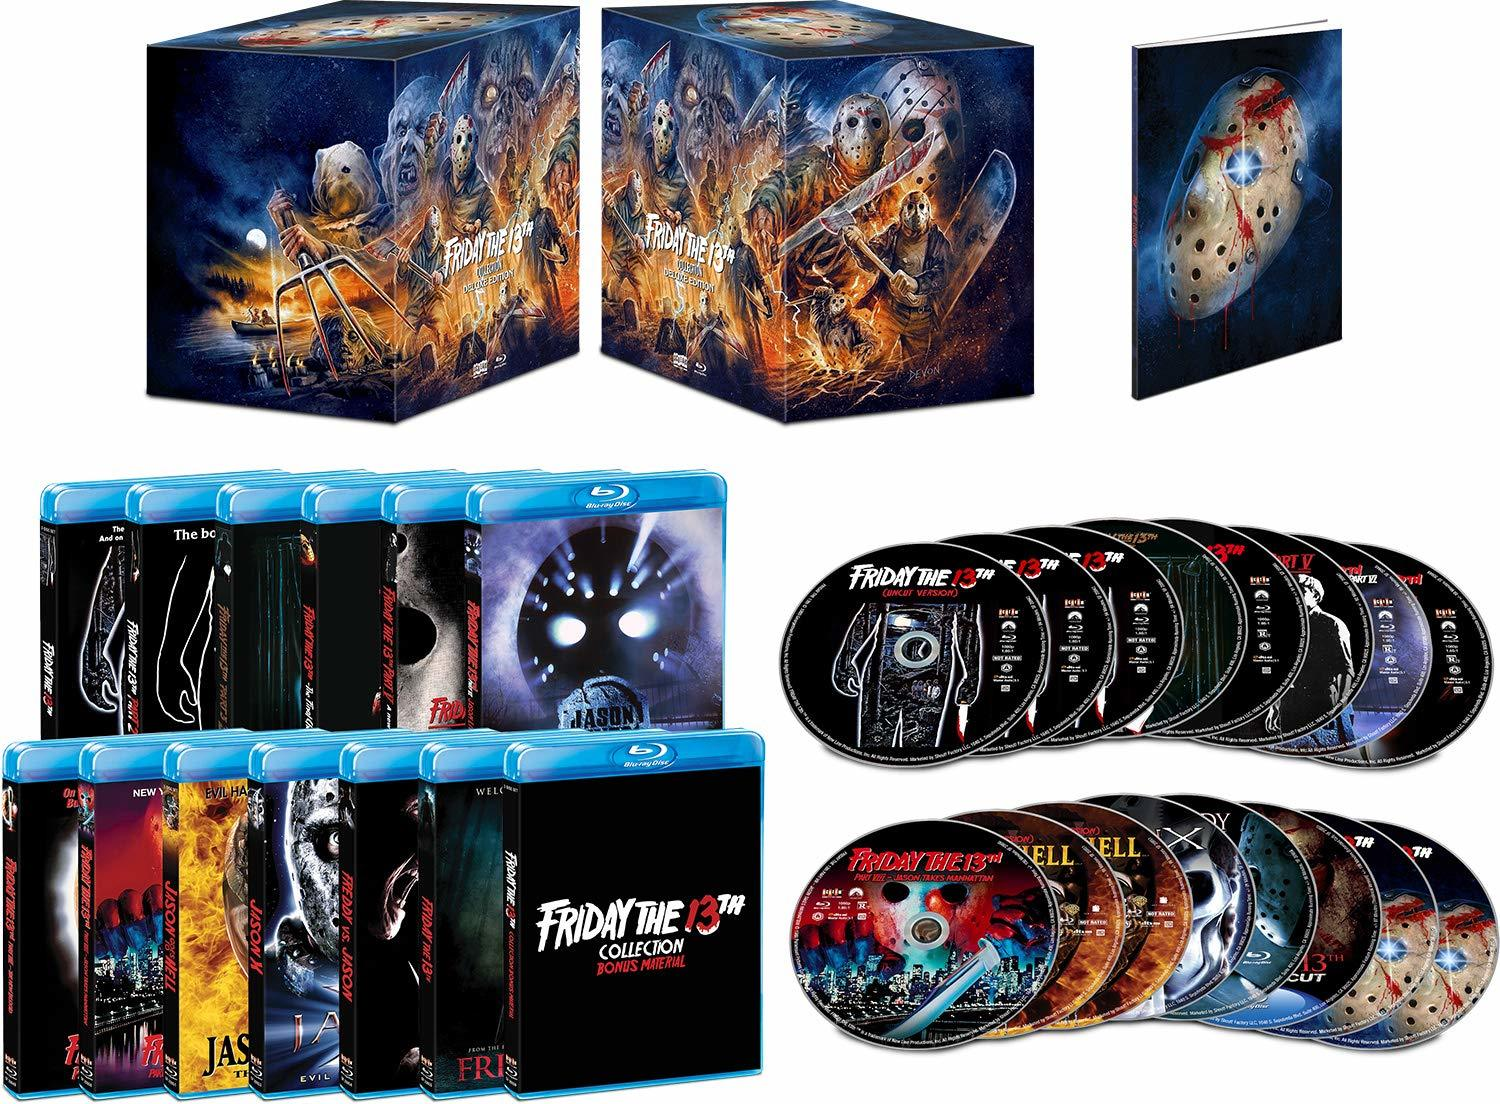 Friday the 13th Collection (Blu-ray)